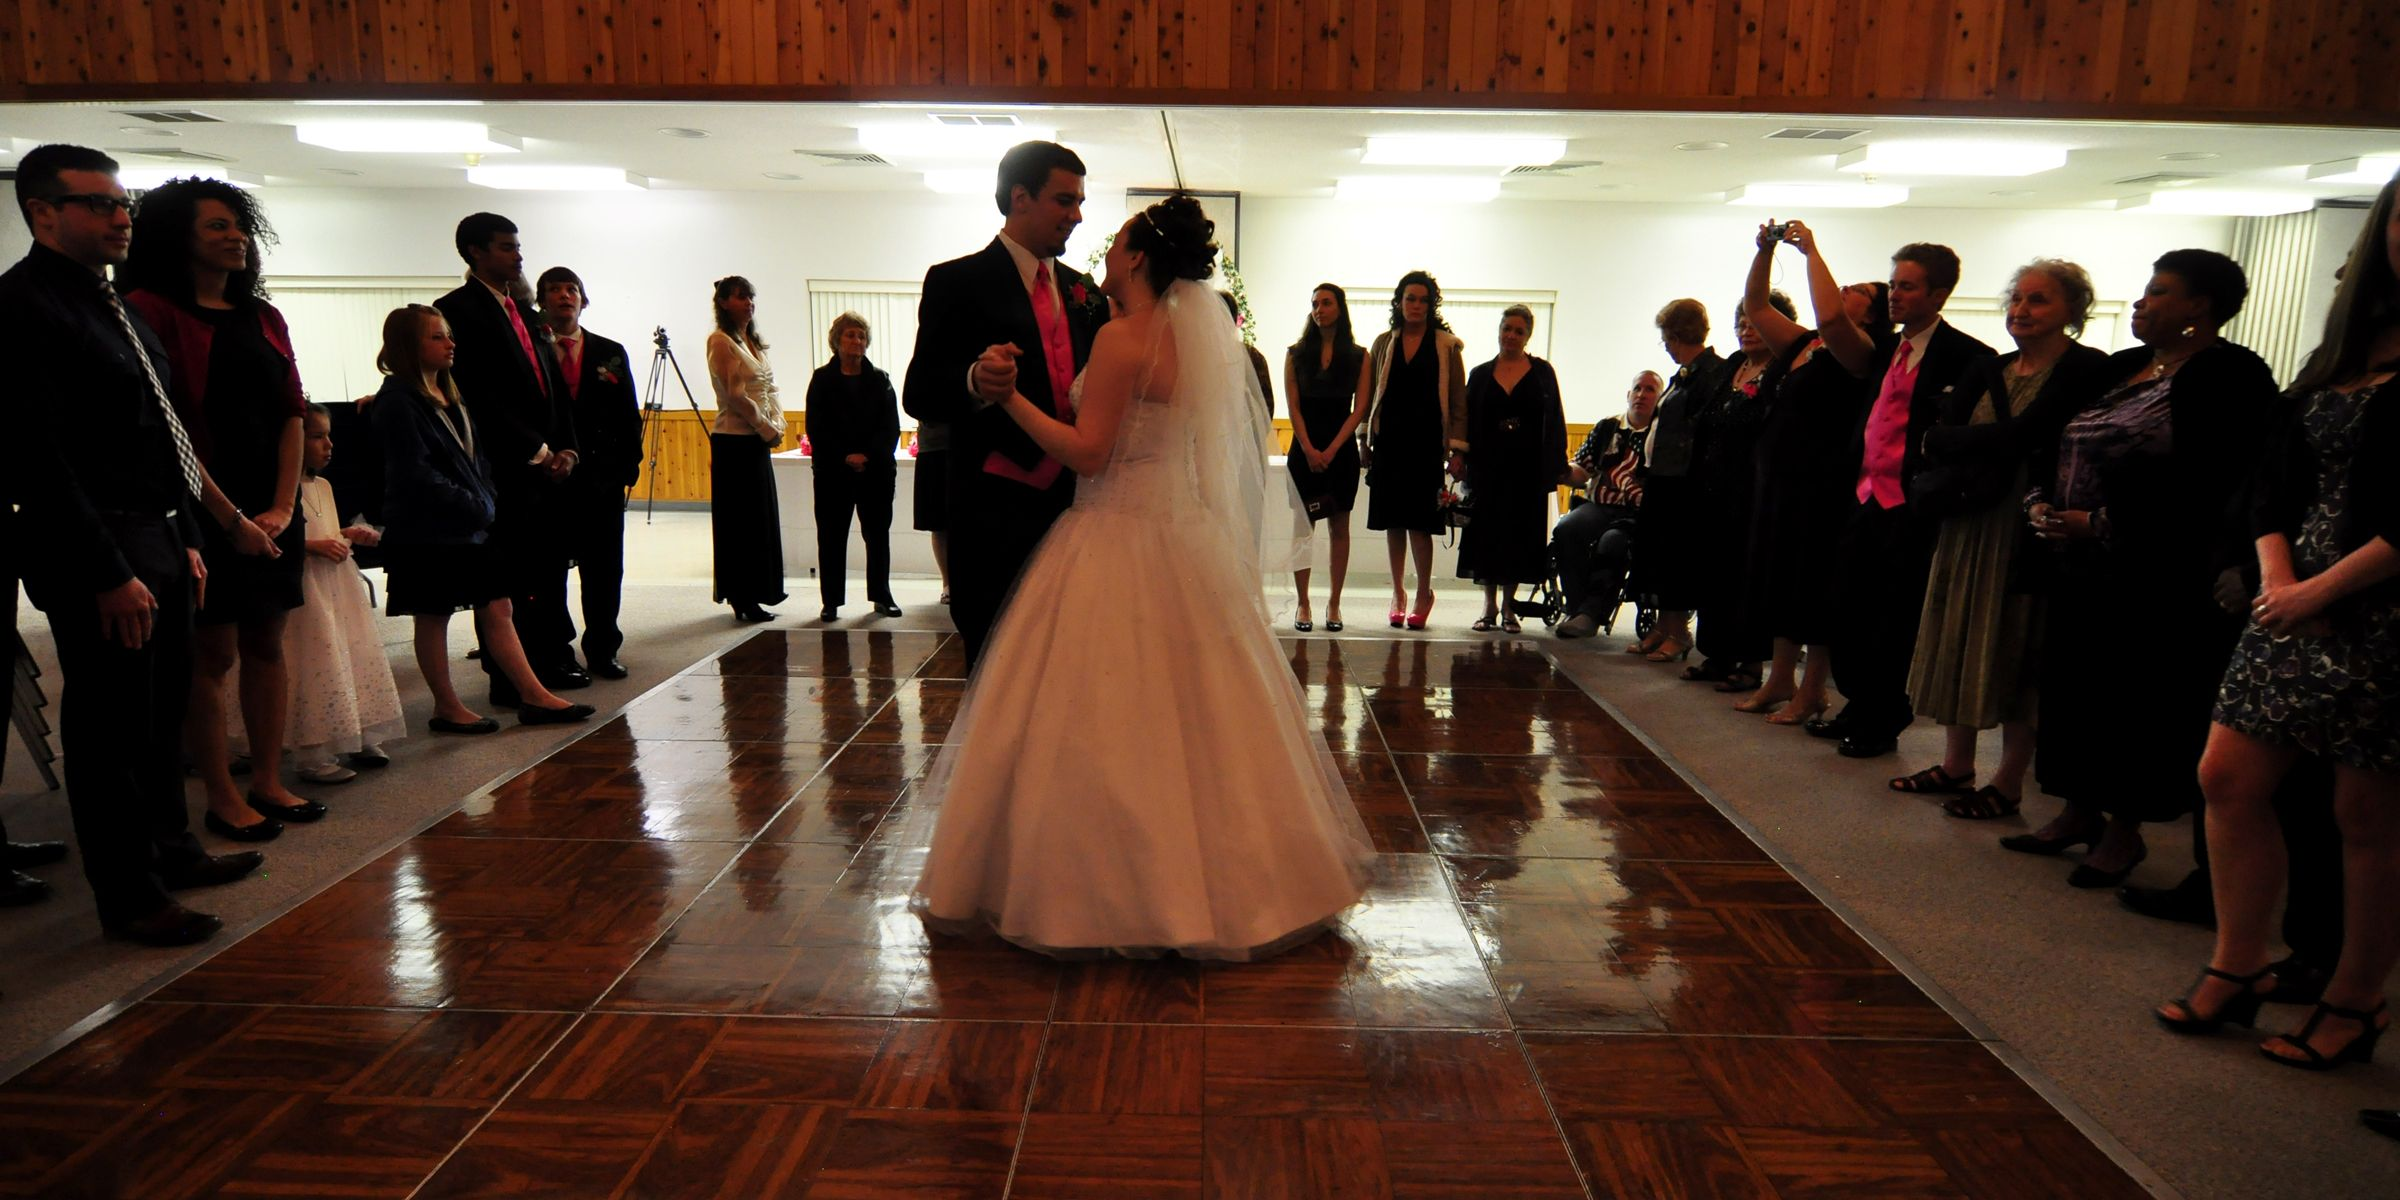 Wedding photography idea: available light dance photo with crowd encircling couple